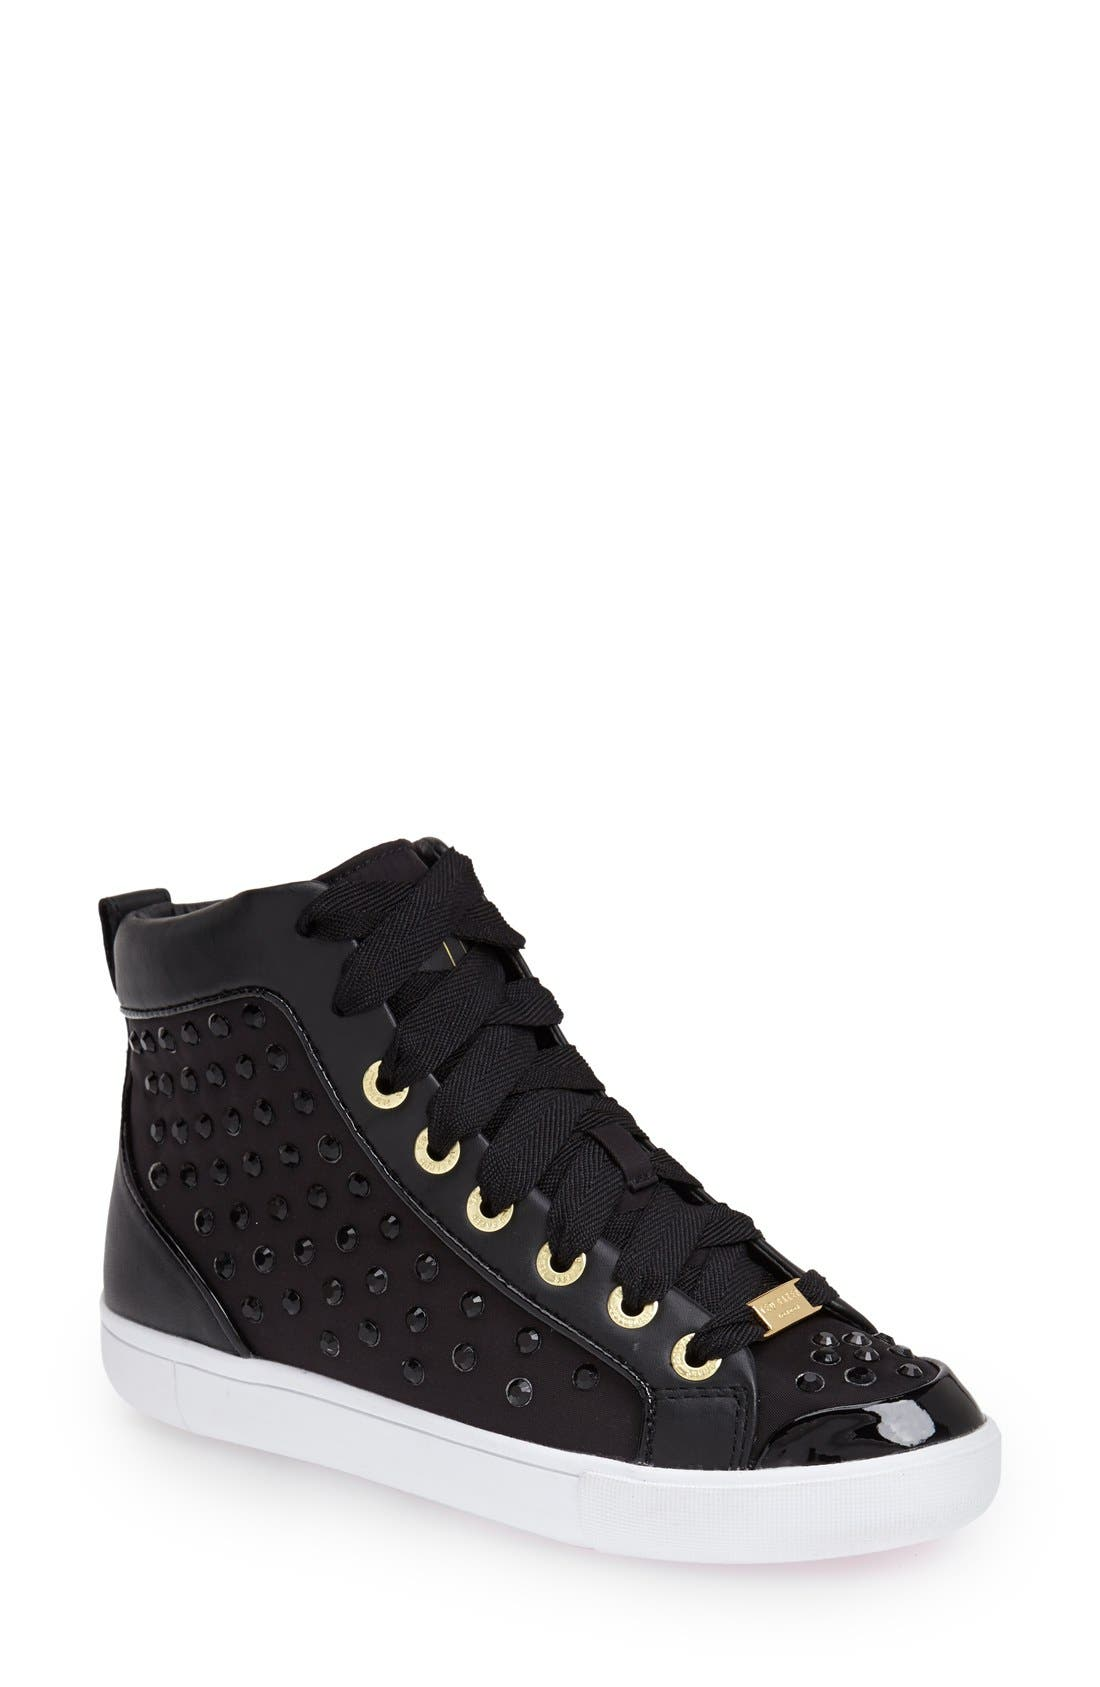 Main Image - Ted Baker London 'Beatrin' High Top Sneaker (Women)